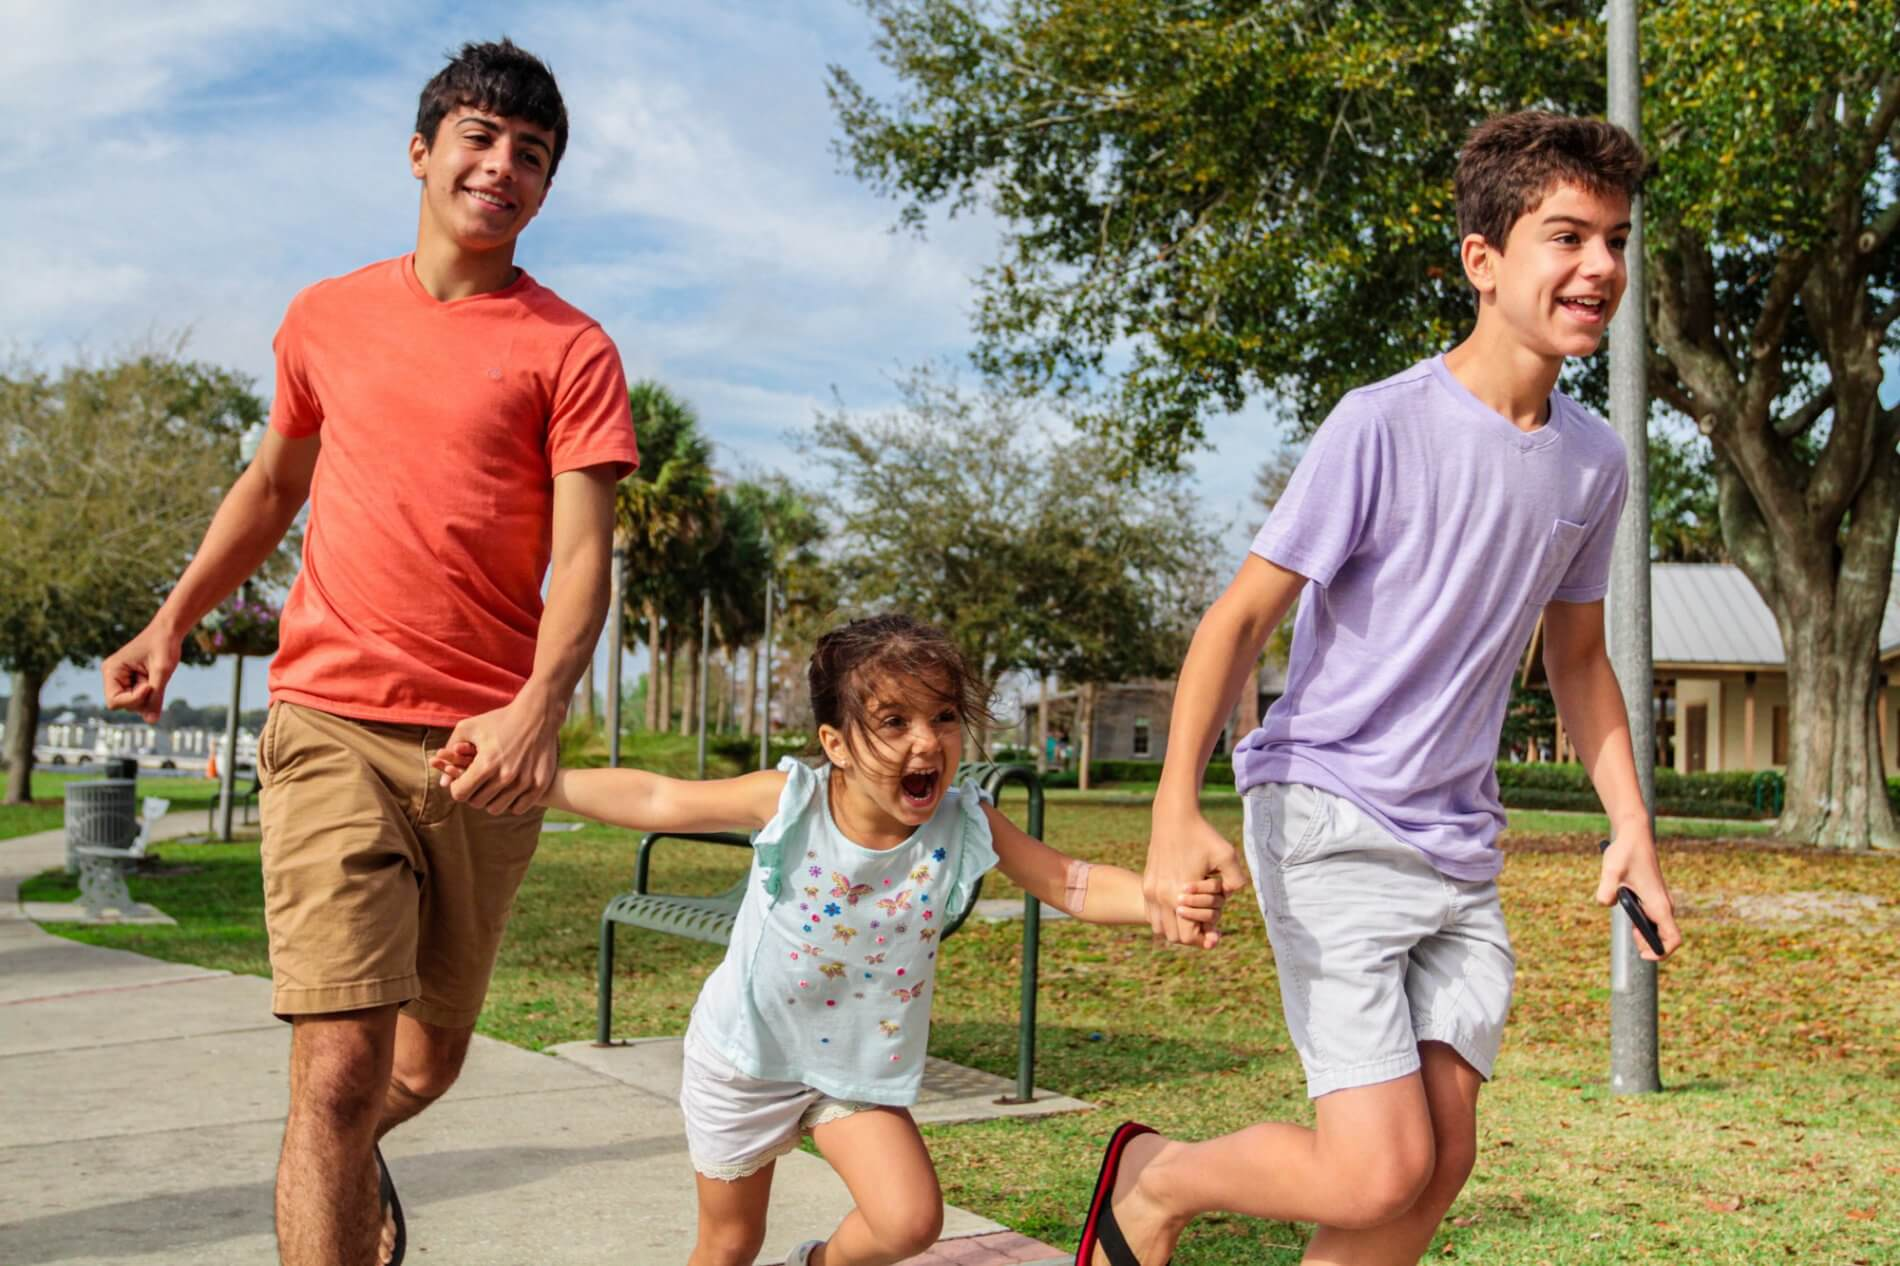 Three siblings run together in a park.